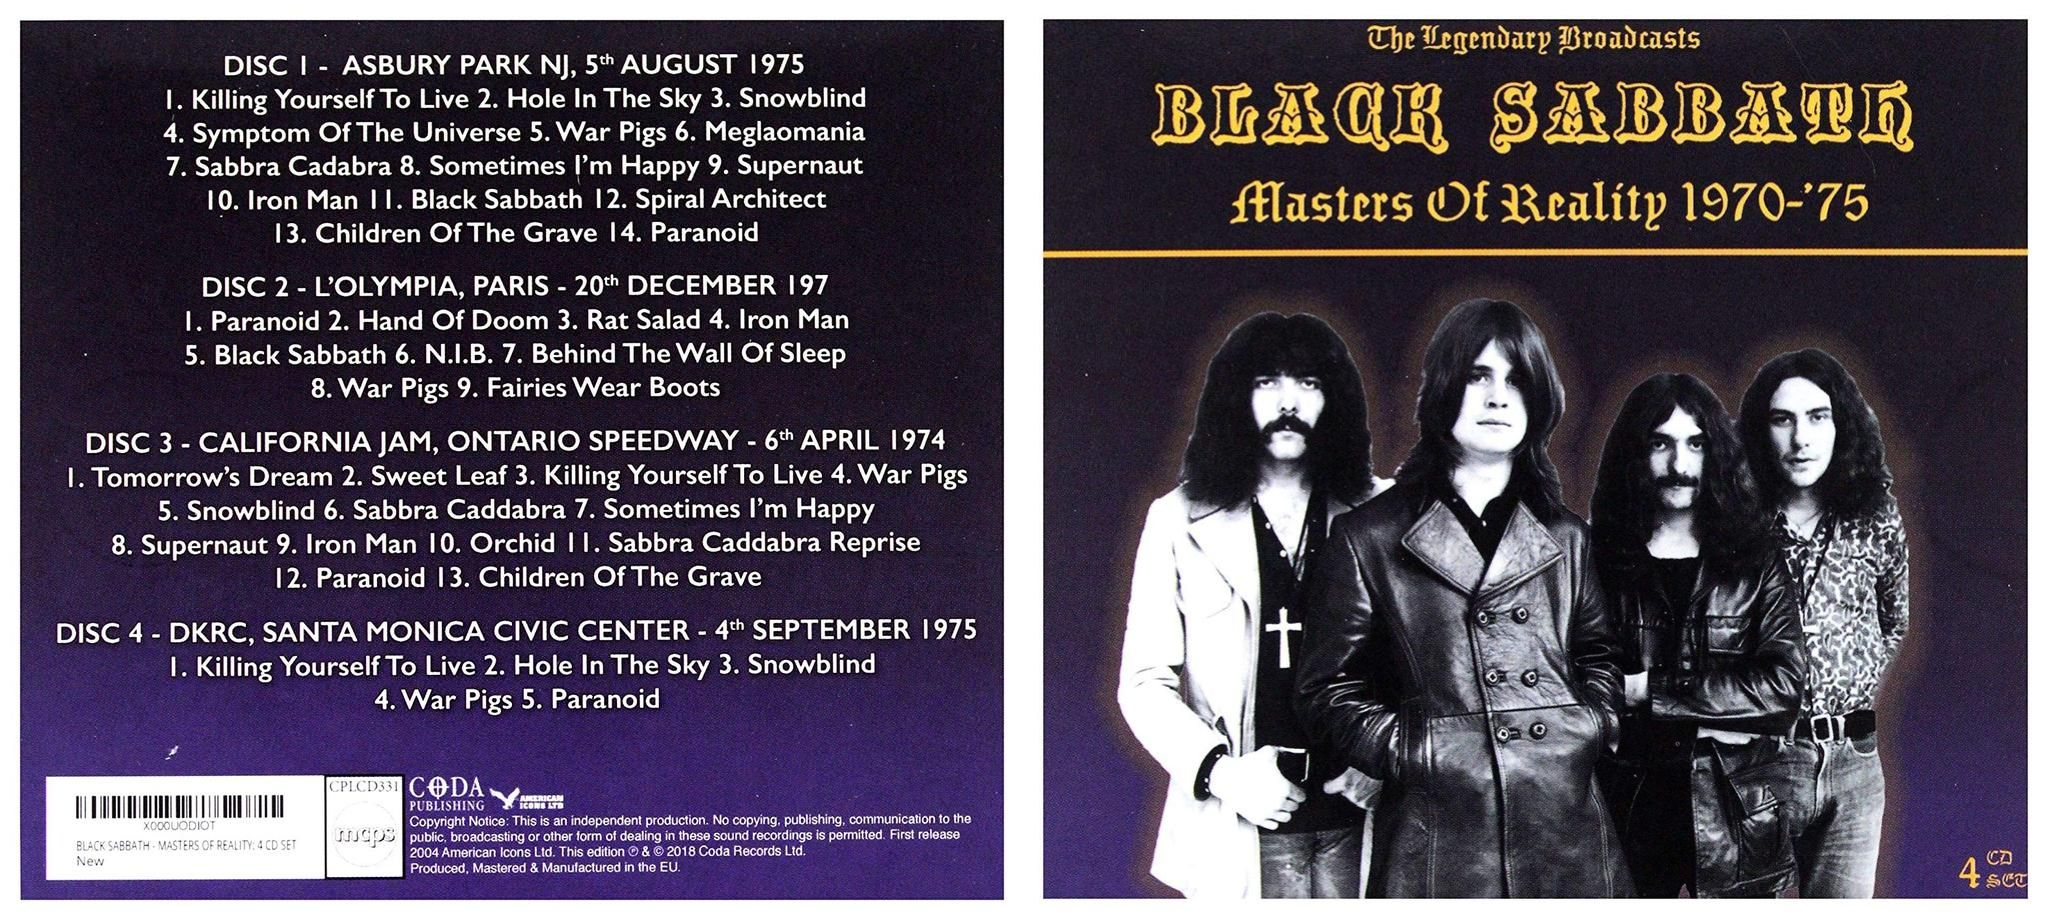 black sabbath masters of reality 1970-75: the legendary broadcasts (asbury park nj, 5th august 1975,  l'olympia, p